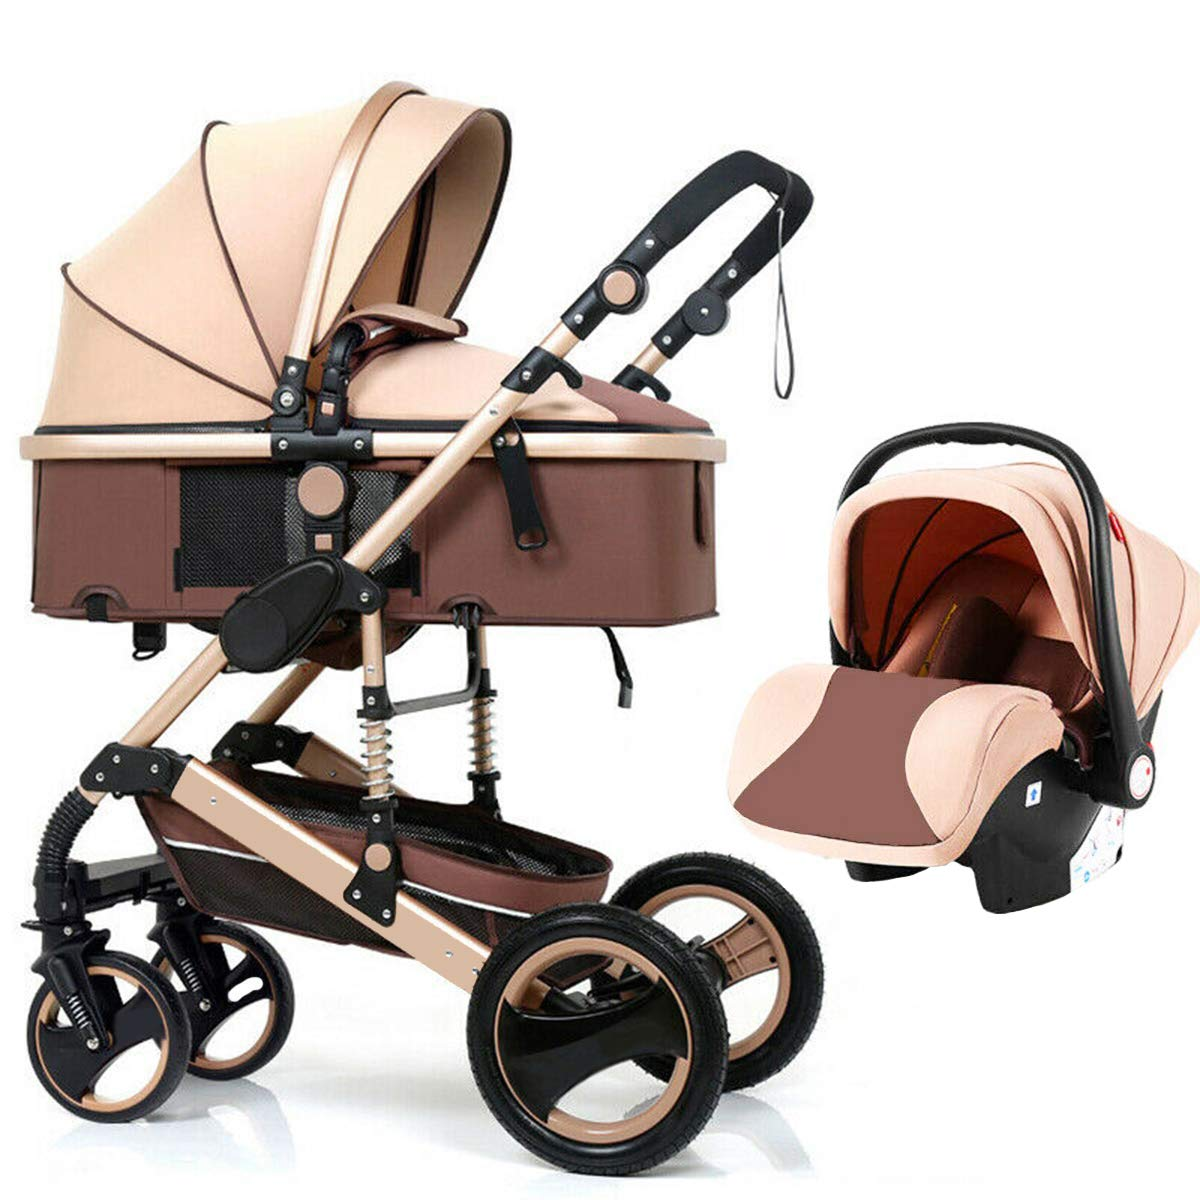 Portable 3 in 1 Baby Stroller,Foldable Carriage Pram Stroller with Baby Basket Car Seat Damping System Protection Adjustable High Landscape Pram Travel System Pushchair,Grows with Child Khaki by MEARTEVE